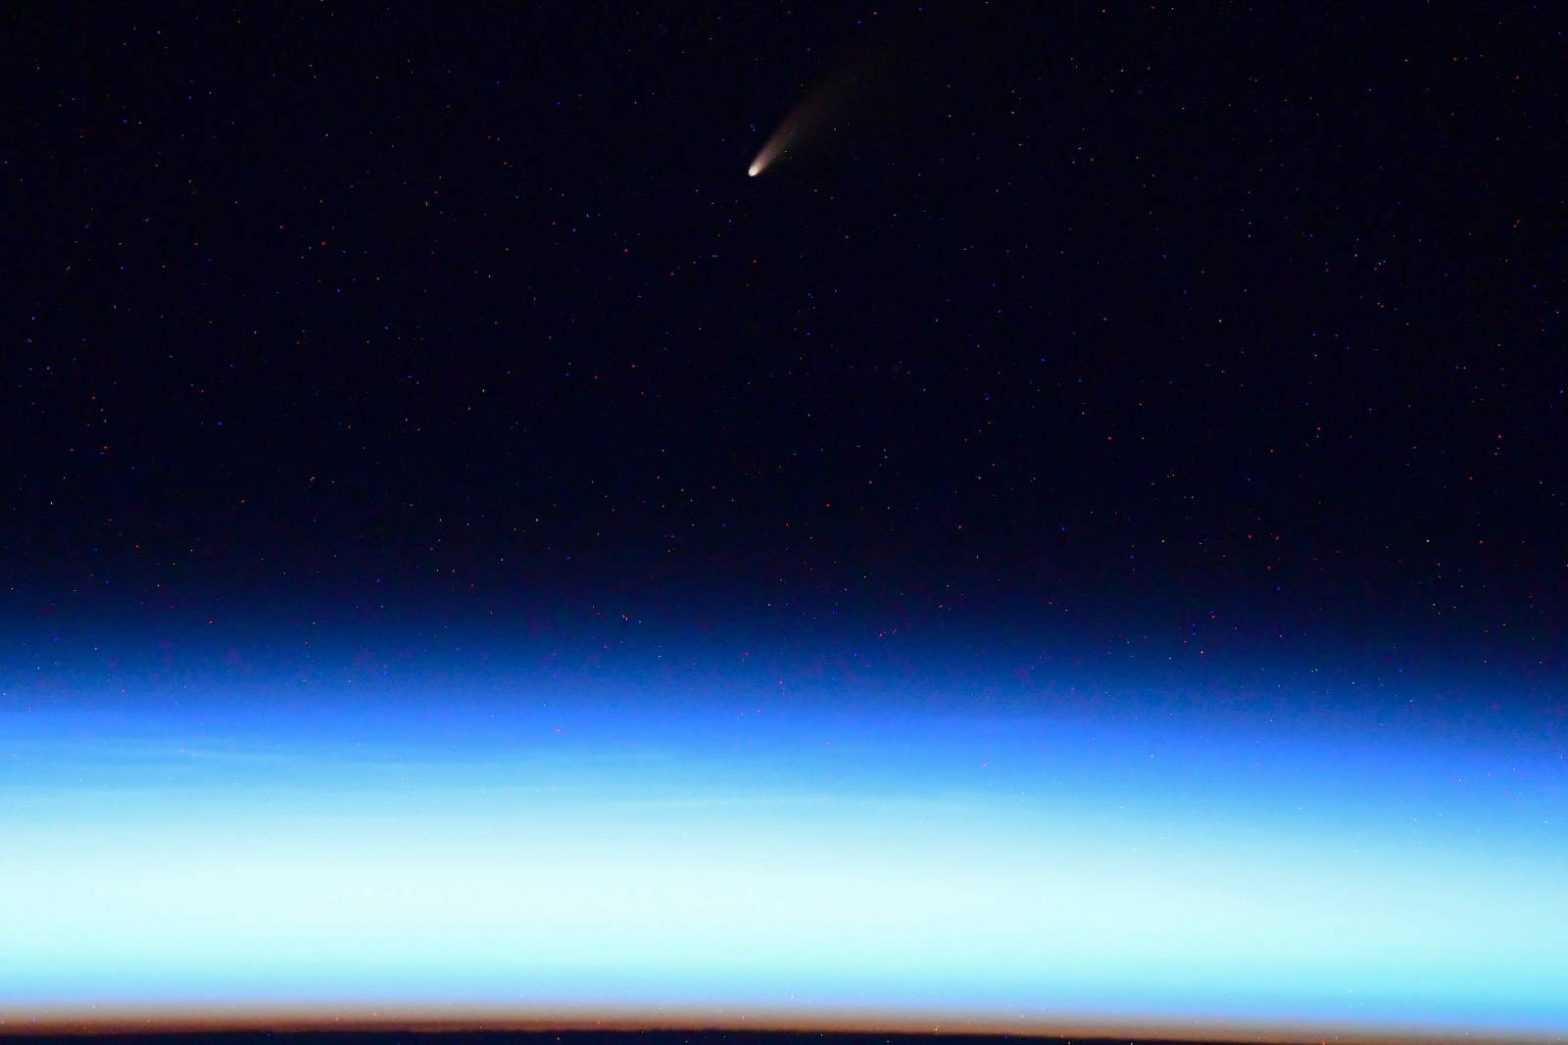 A spectacular comet photo by the Russian cosmonaut Ivan Vagner